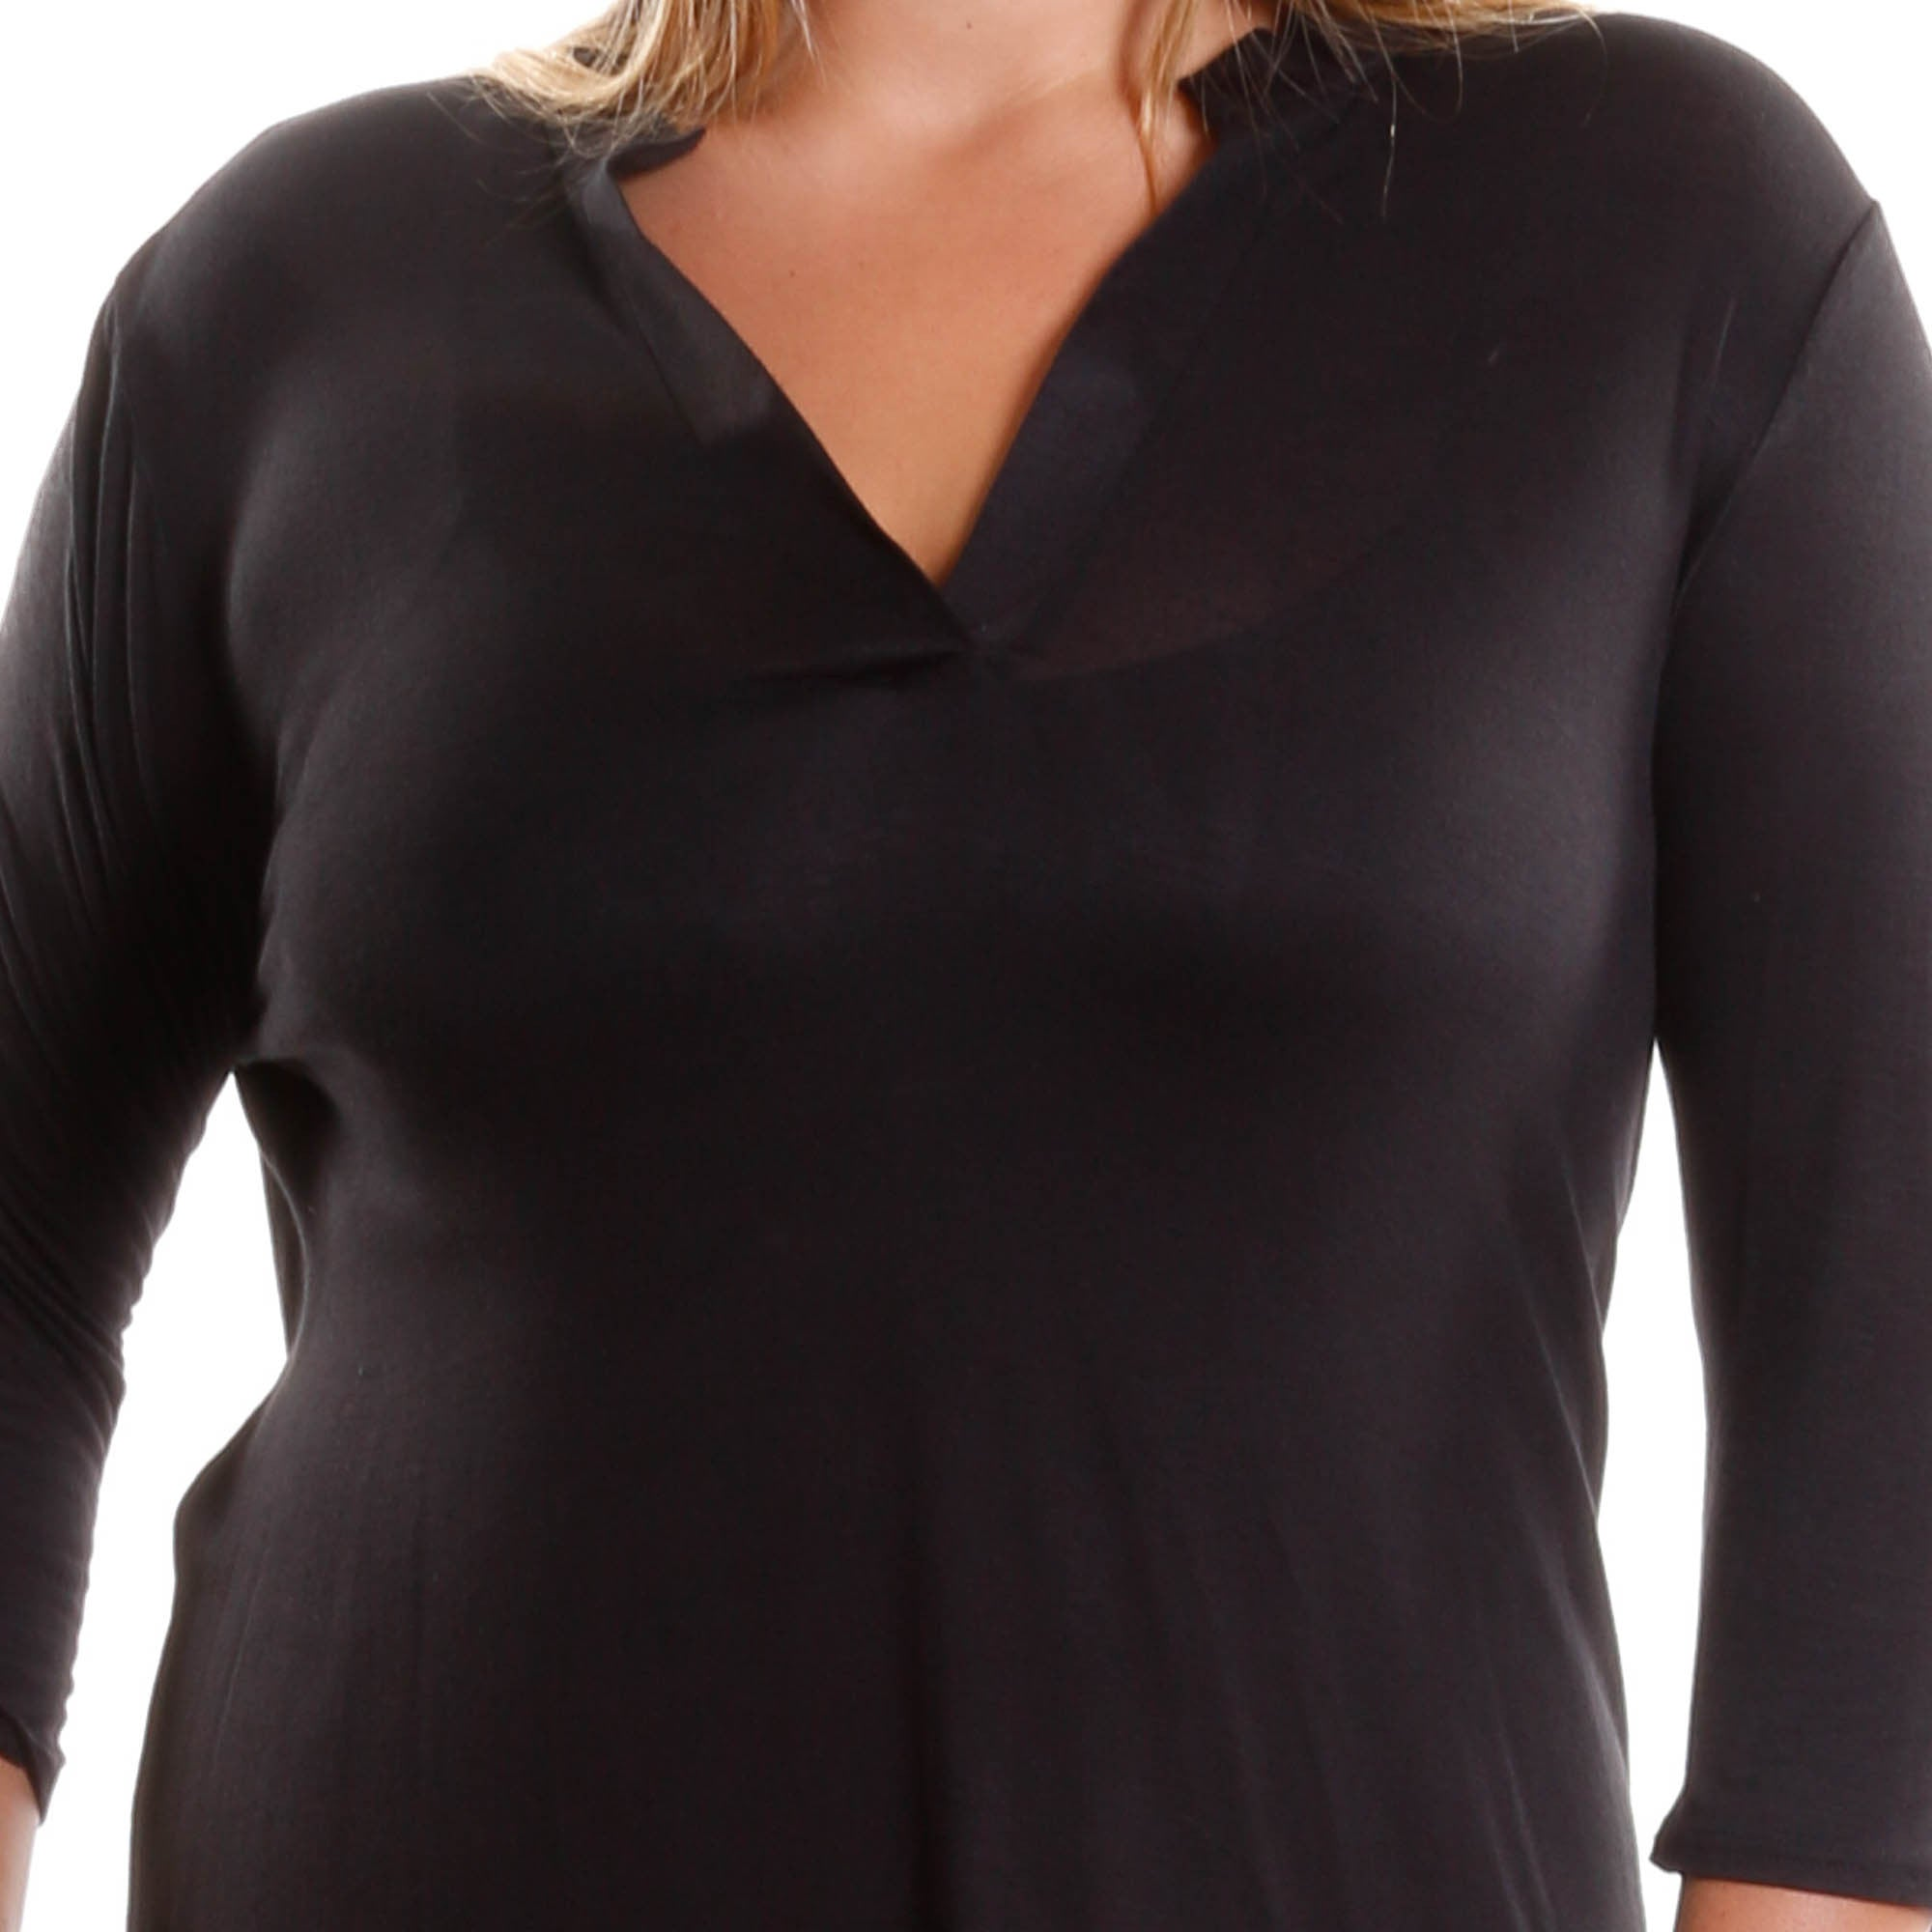 Plus Size Asymmetrical Hem Fashion Top